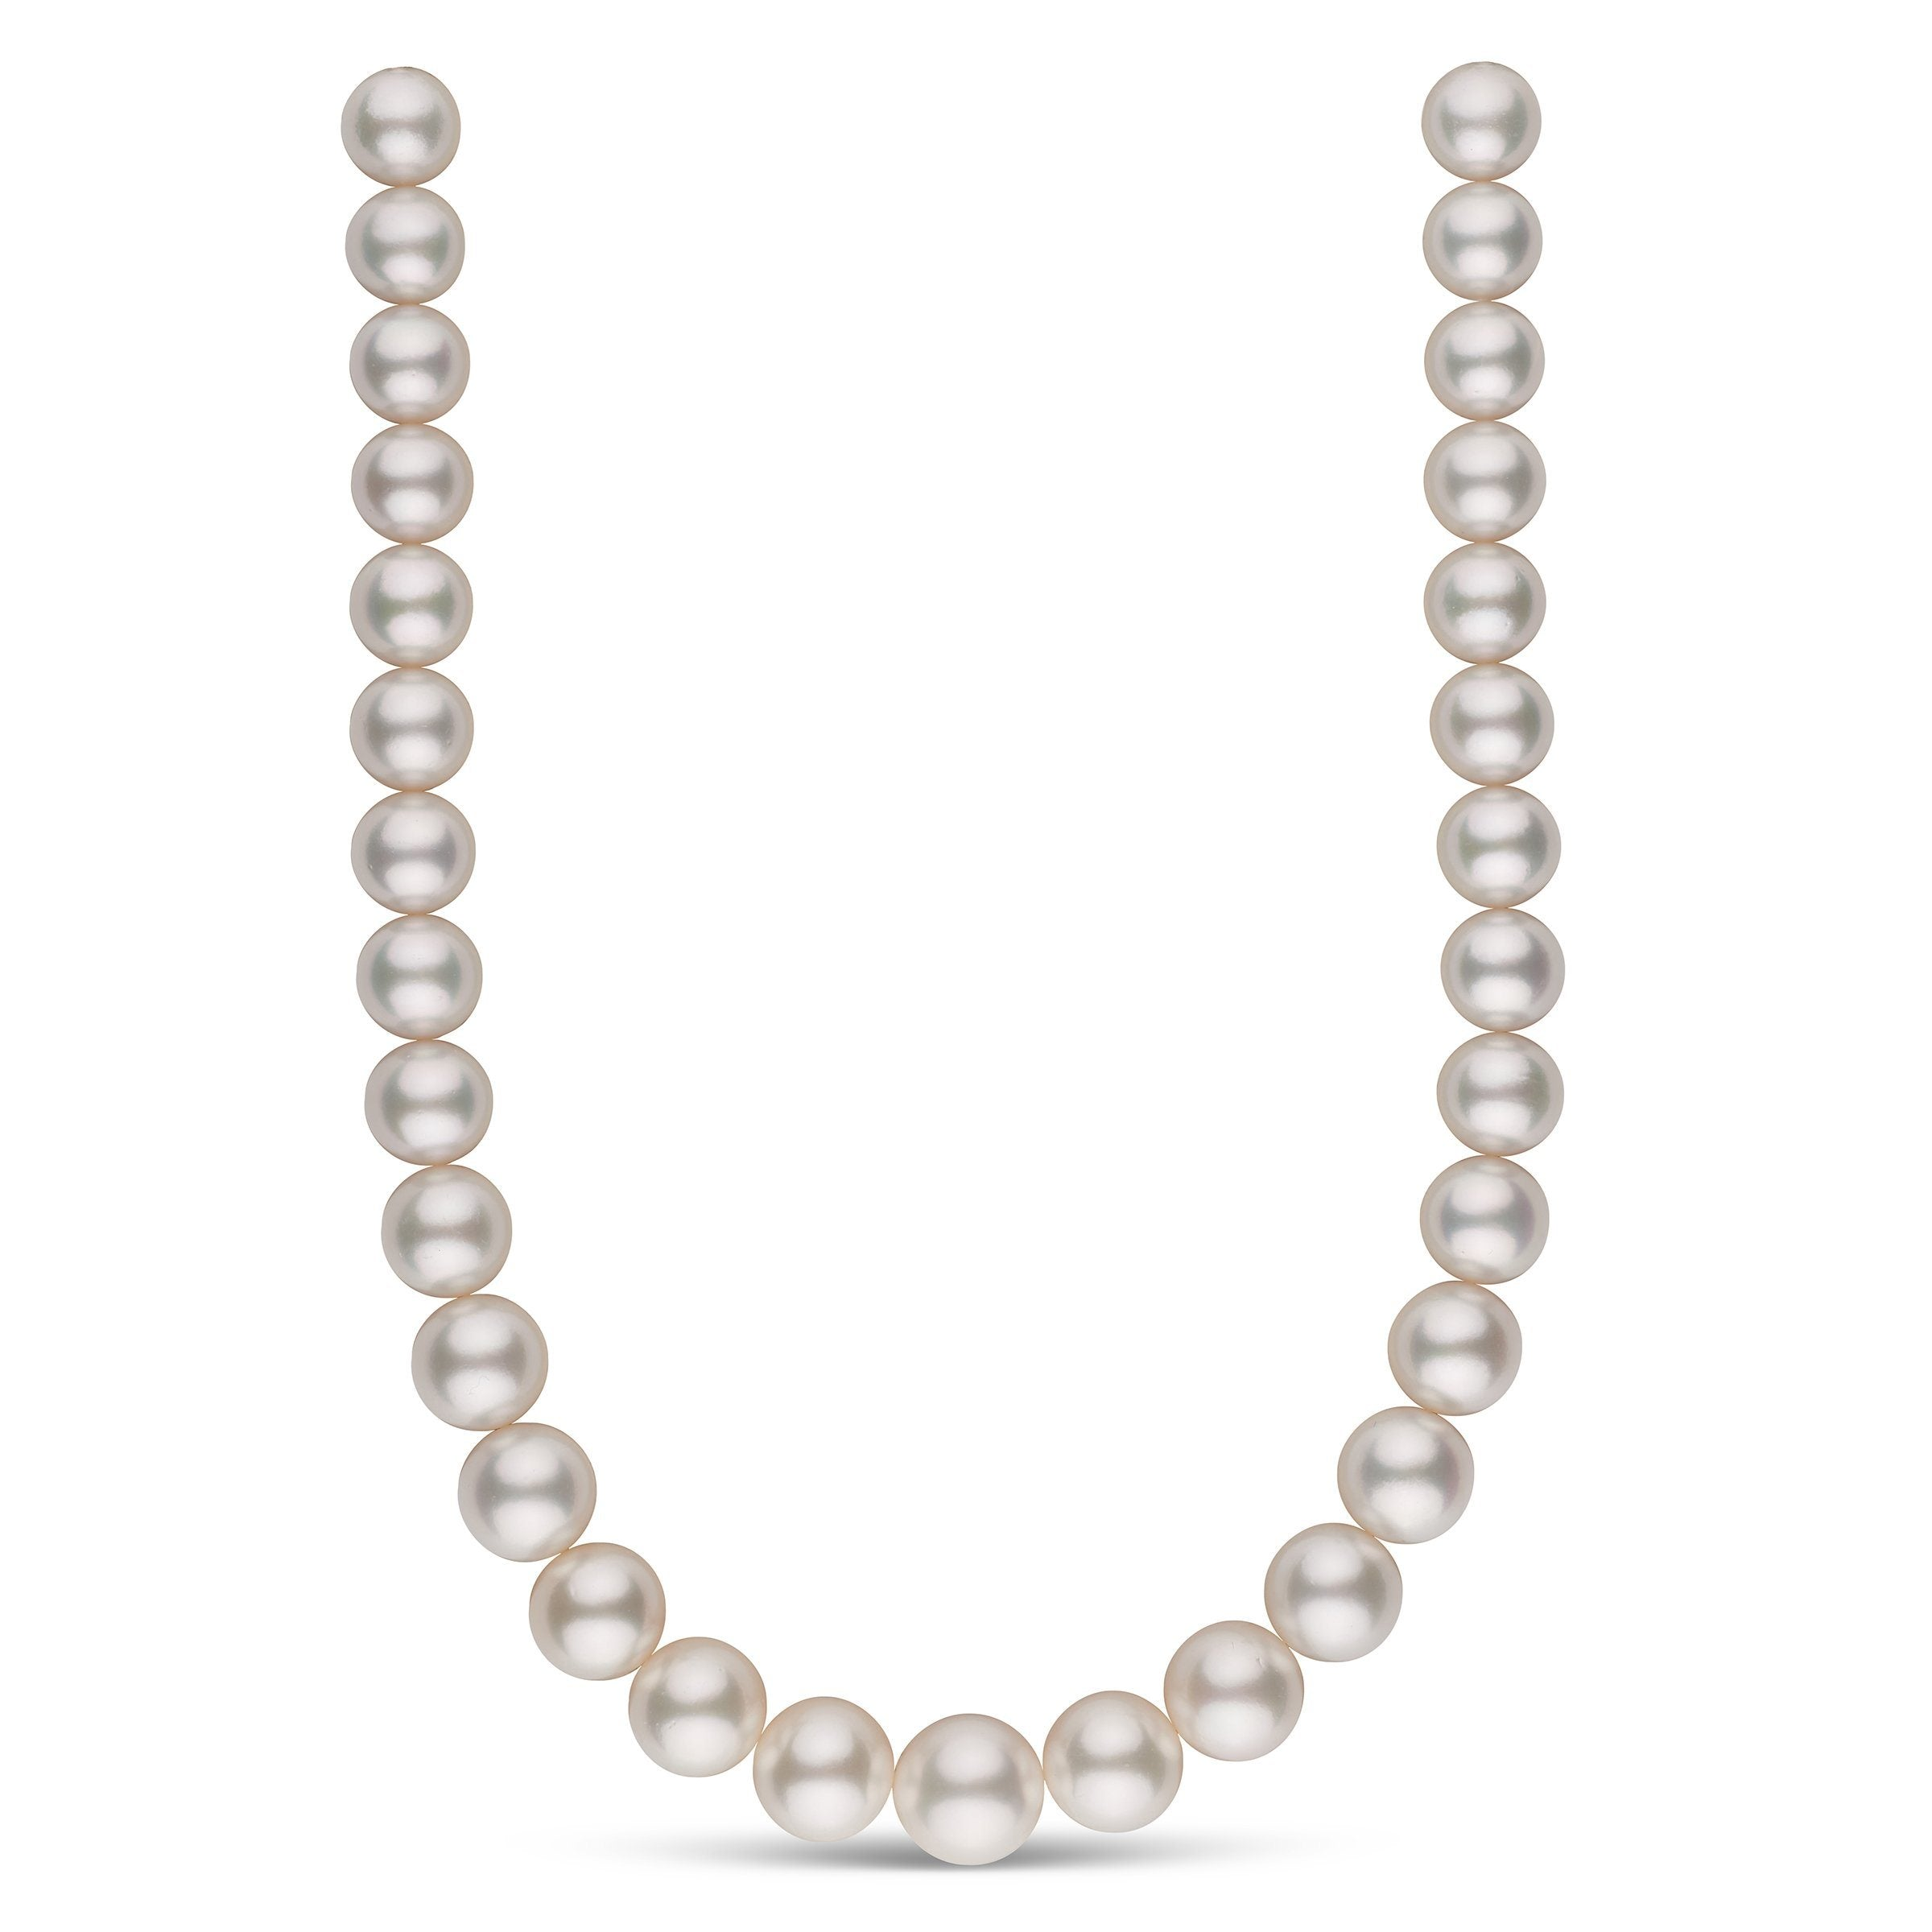 13.0-16.2 mm AA+/AAA White South Sea Round Pearl Necklace